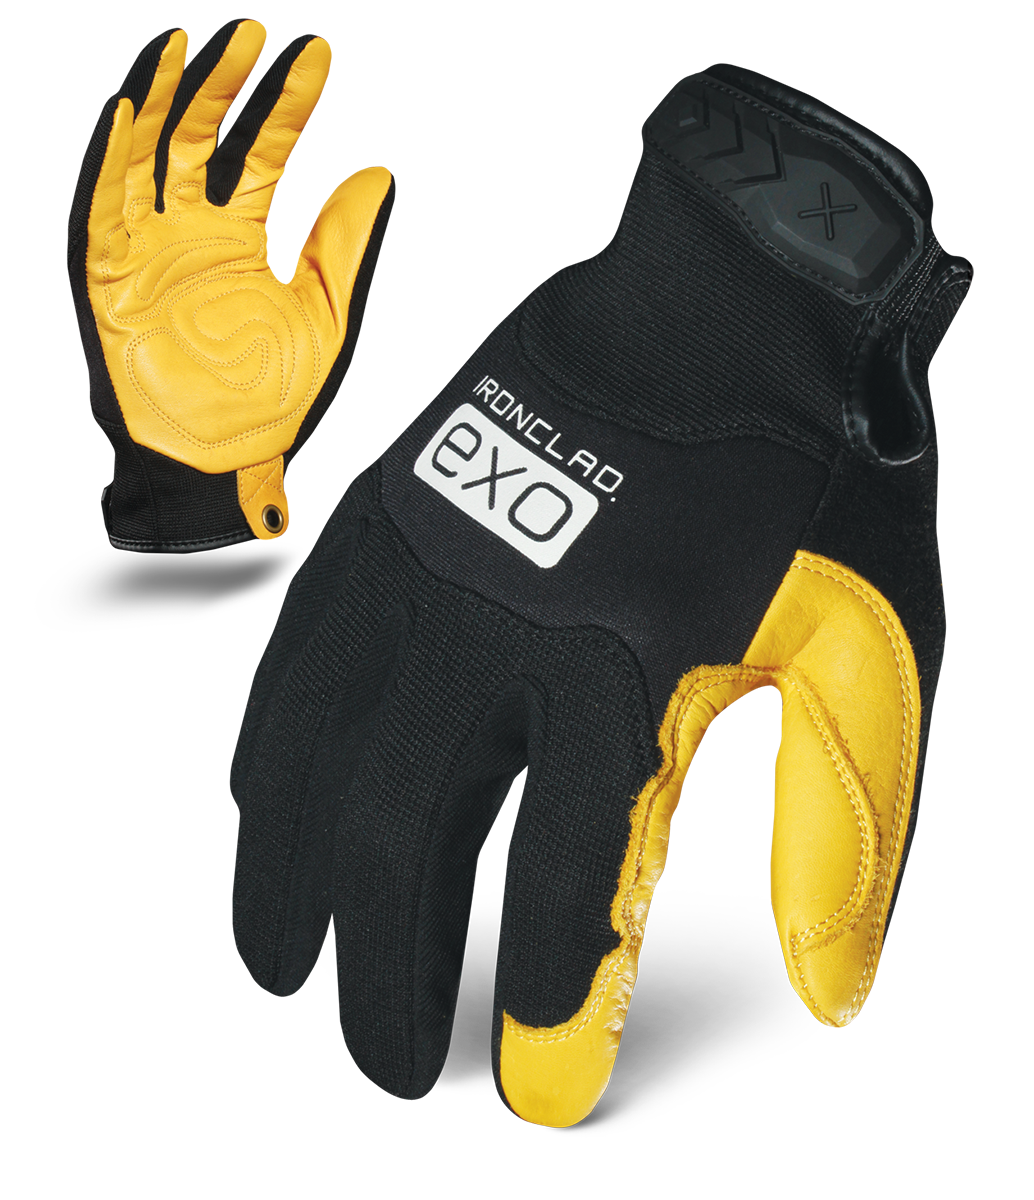 Armour Safety Products Ltd. - EXO Pro Gold Goat Leather